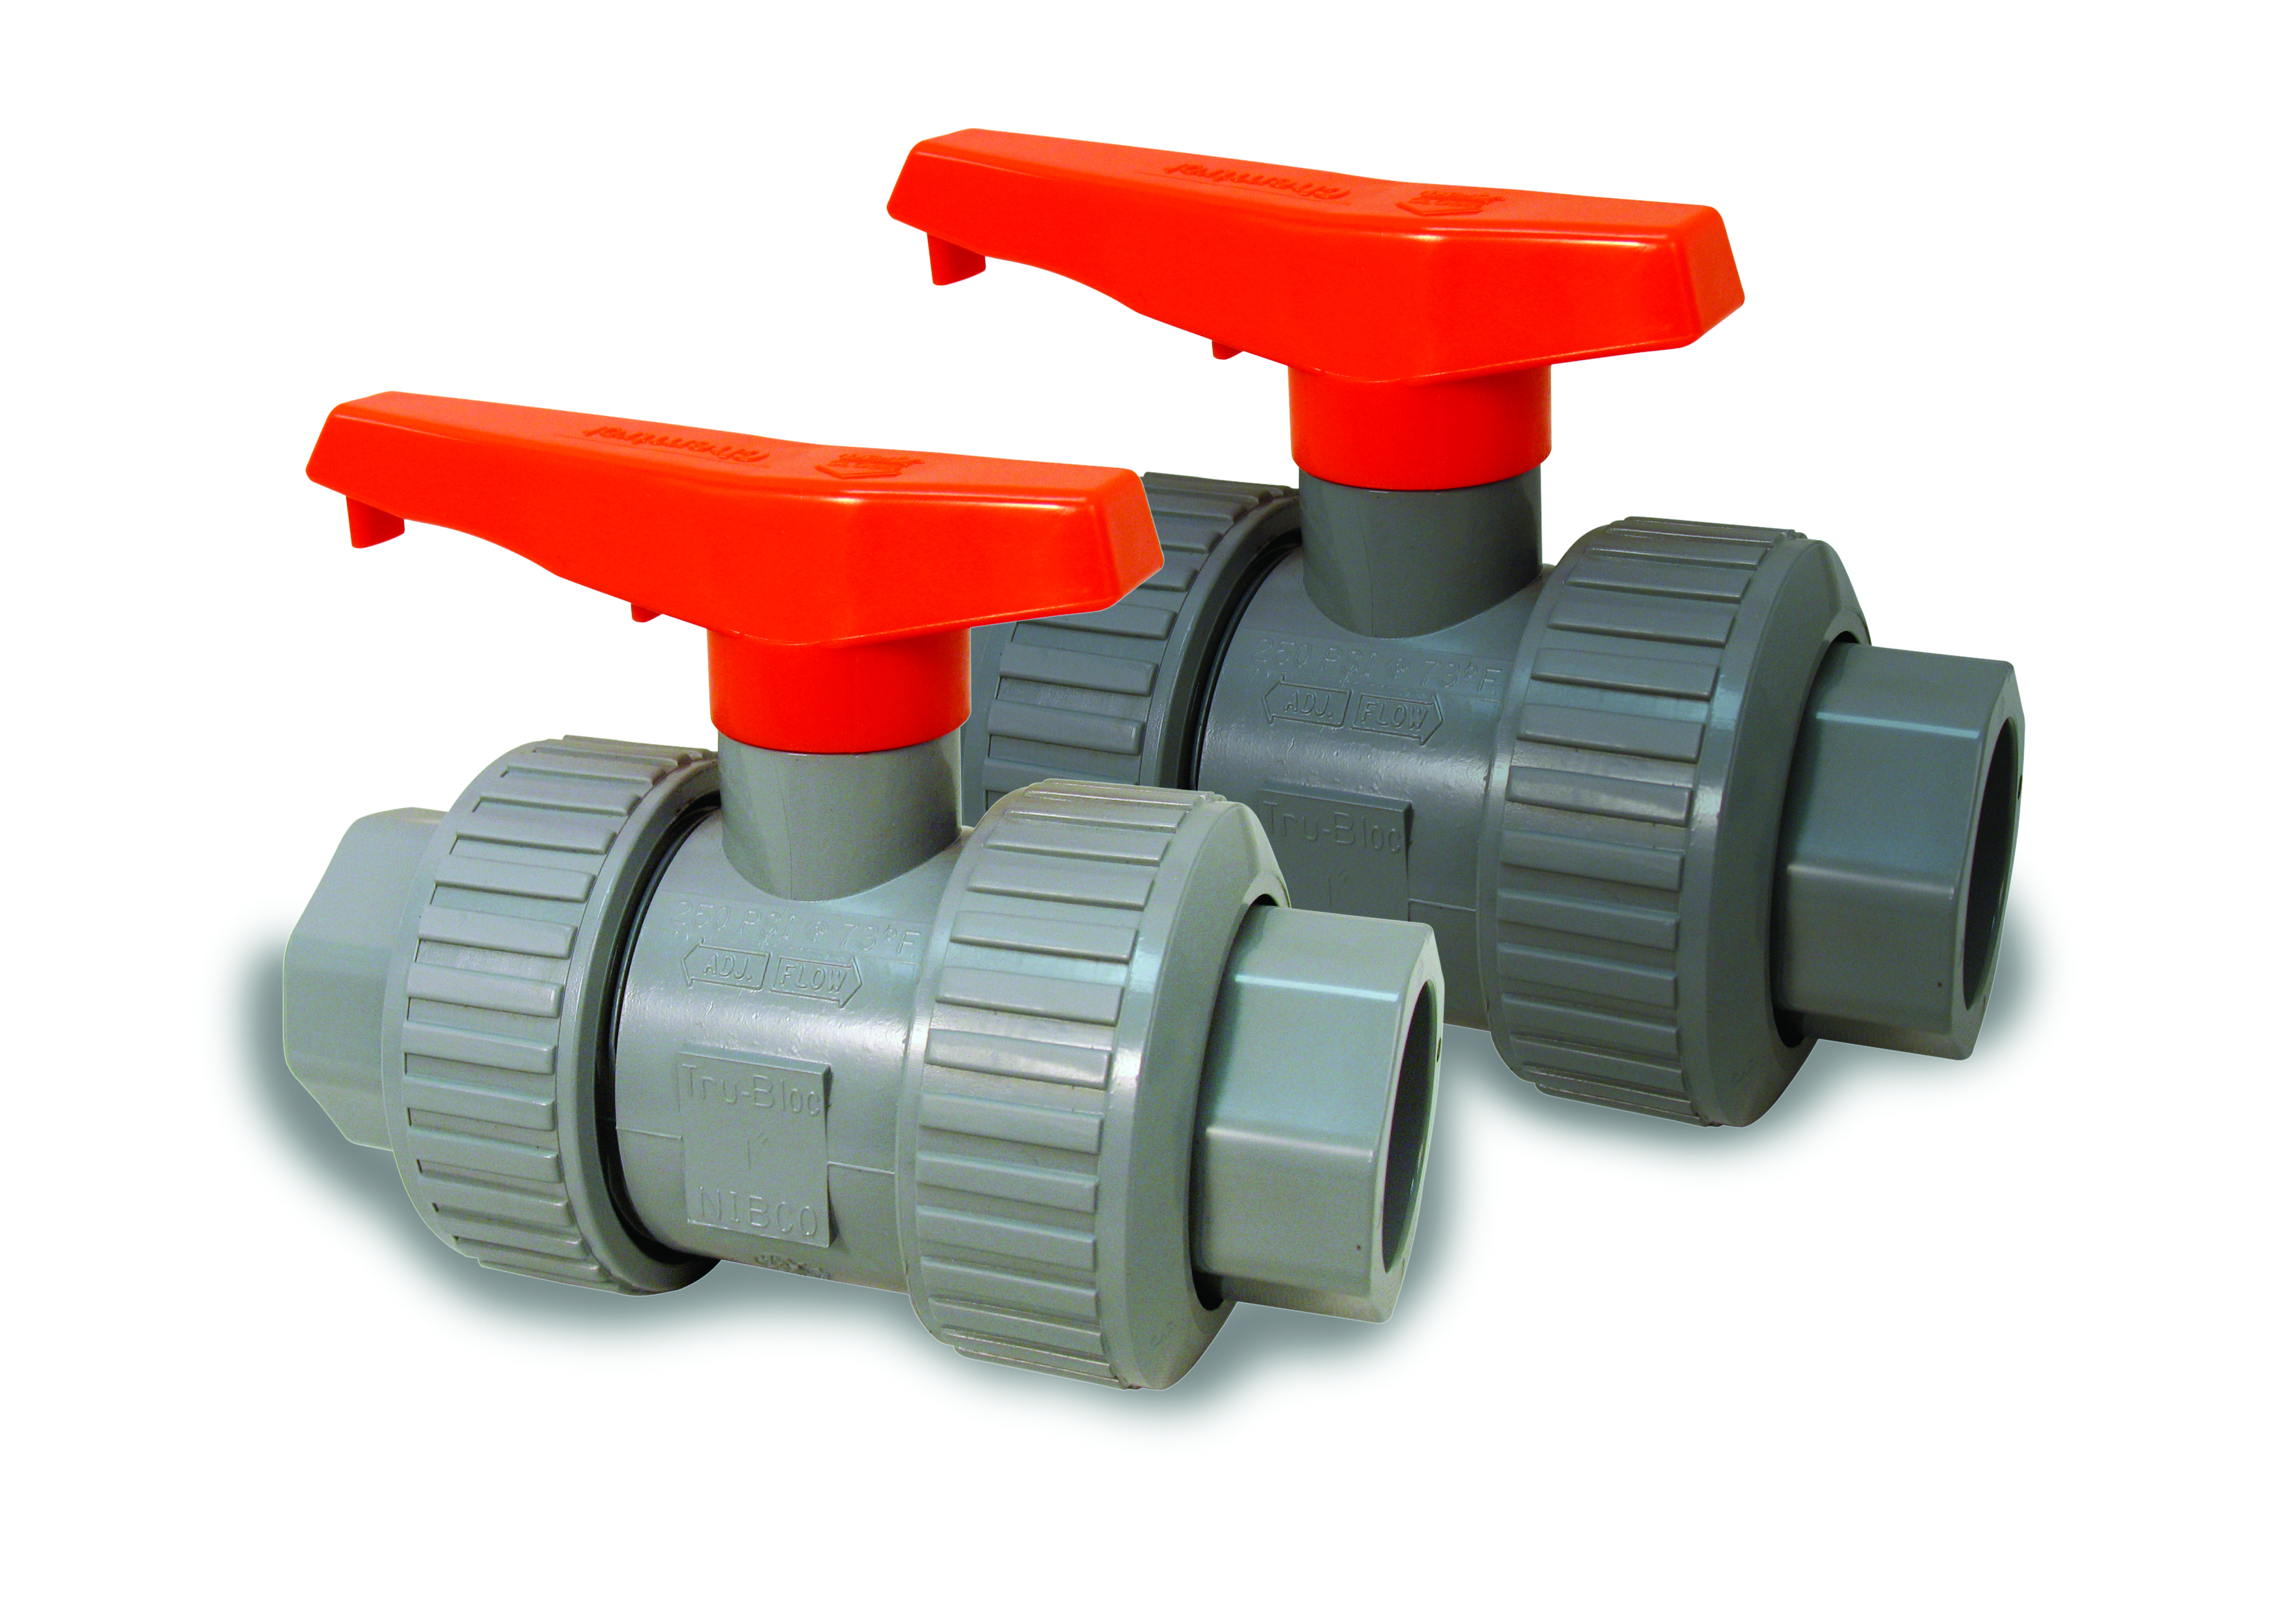 NIBCO Chemtrol Thermoplastic Valves and Fittings